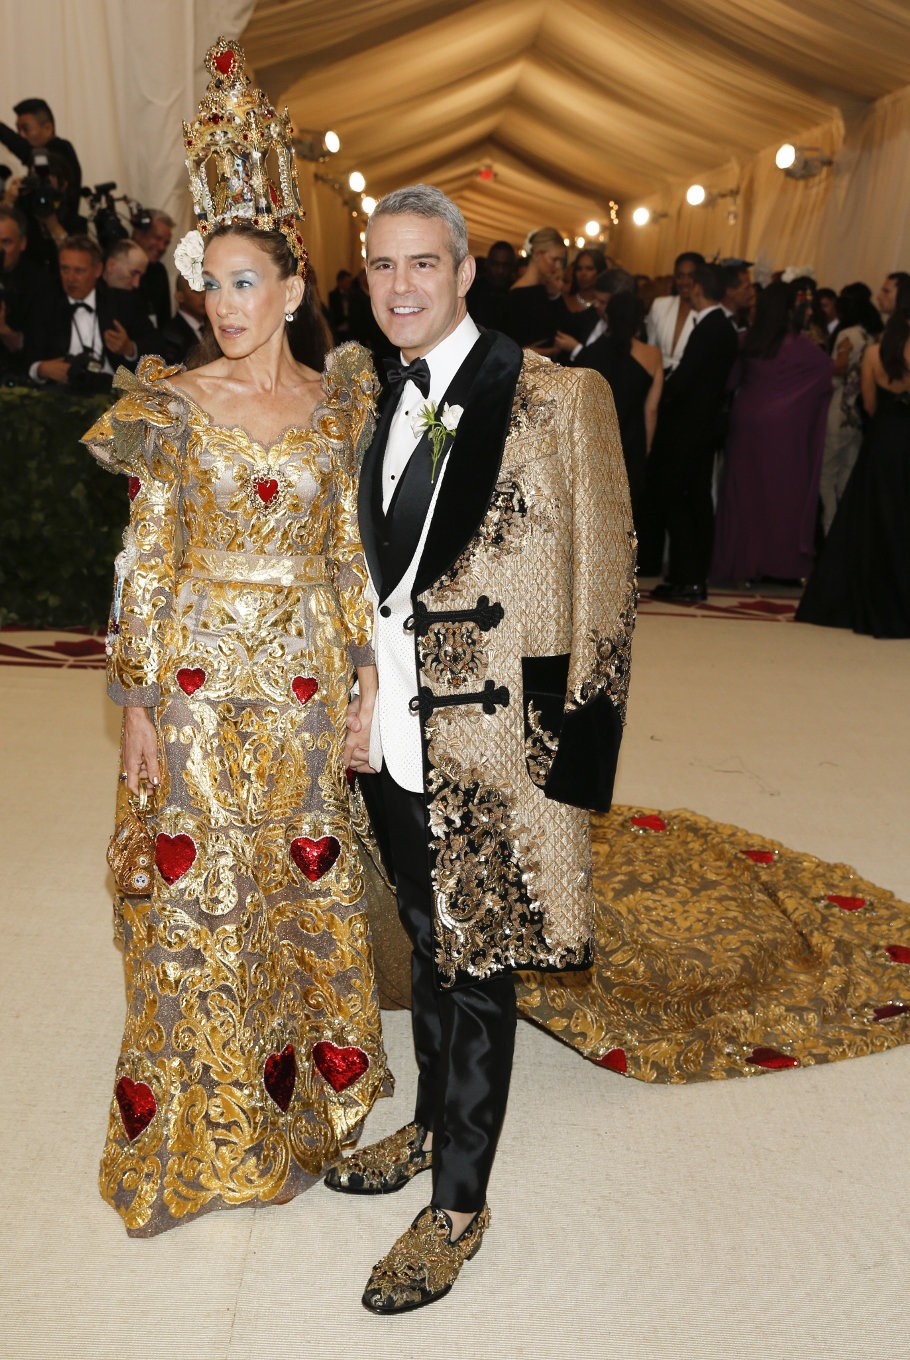 Sarah Jessica Parker and Andy Cohen arrive at the Metropolitan Museum of Art Costume Institute Gala (Met Gala) to celebrate the opening of 'Heavenly Bodies: Fashion and the Catholic Imagination' in the Manhattan borough of New York, U.S., May 7, 2018.